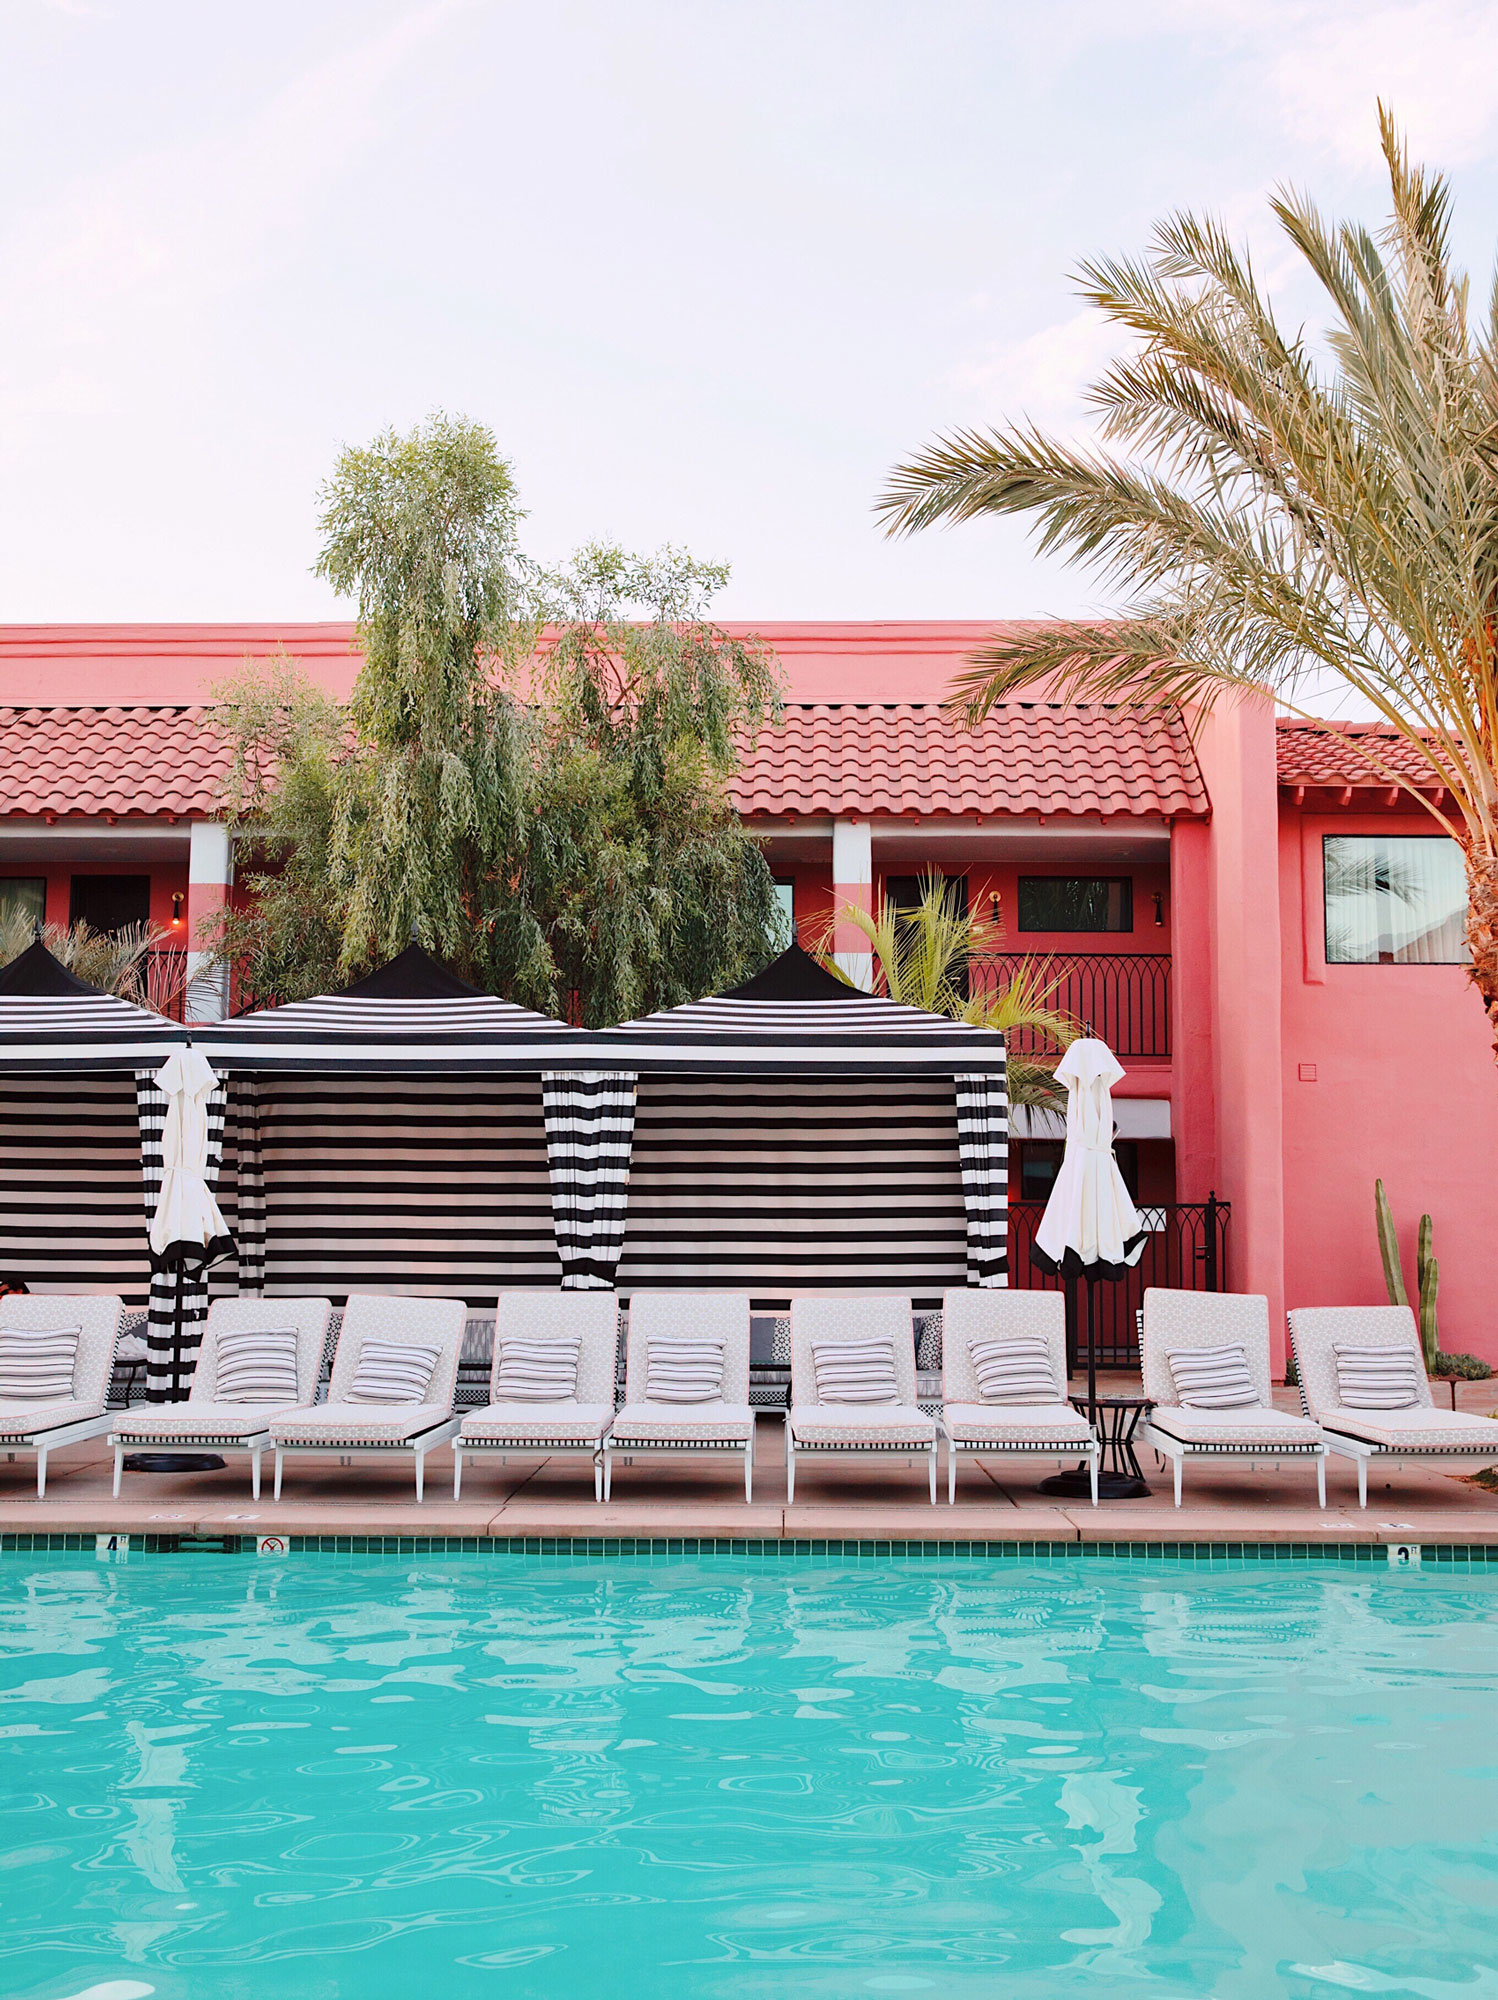 The Sands Hotel in Palm Springs. Kimberly Genevieve lifestyle photographer Los Angeles